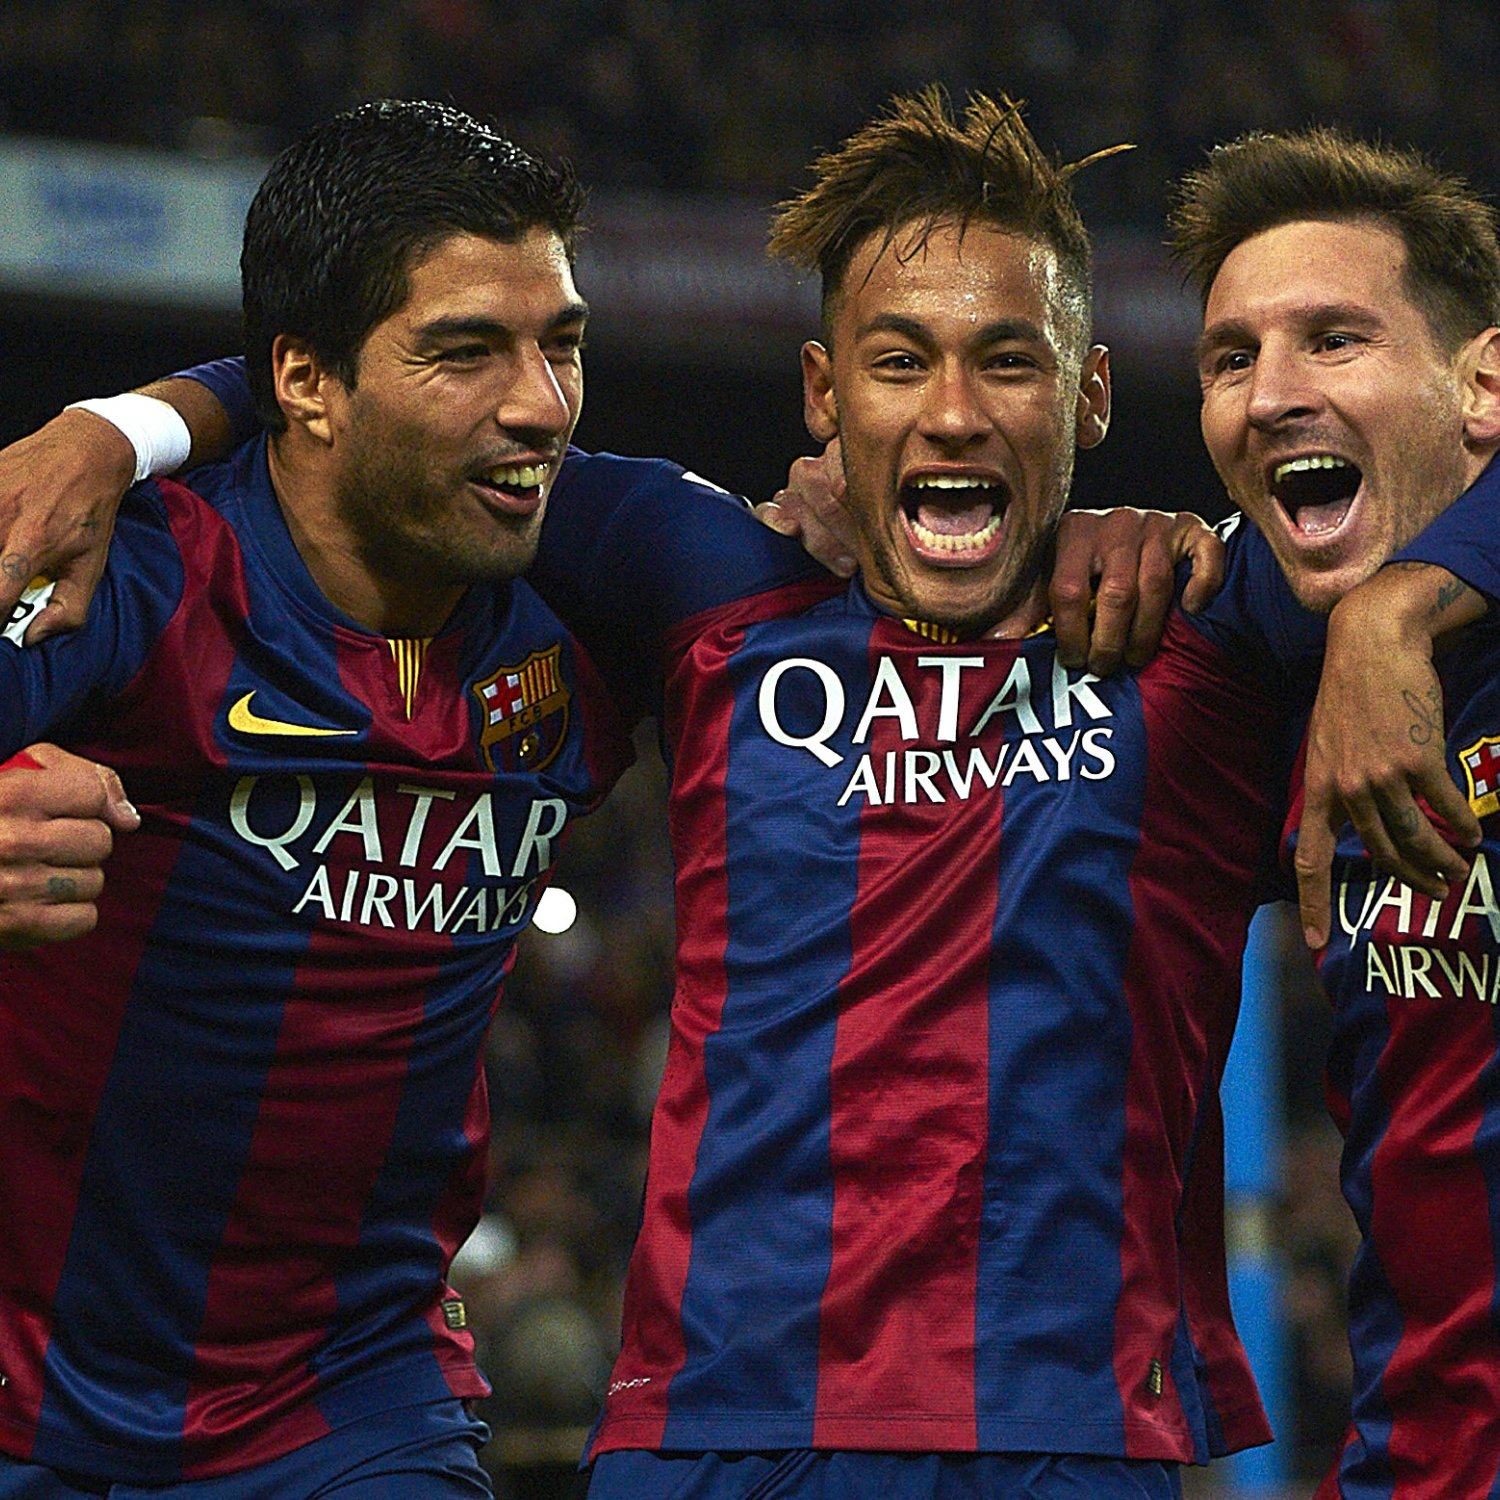 Luis Suarez Not Our C Any More: Neymar Says Relationship With Lionel Messi, Luis Suarez